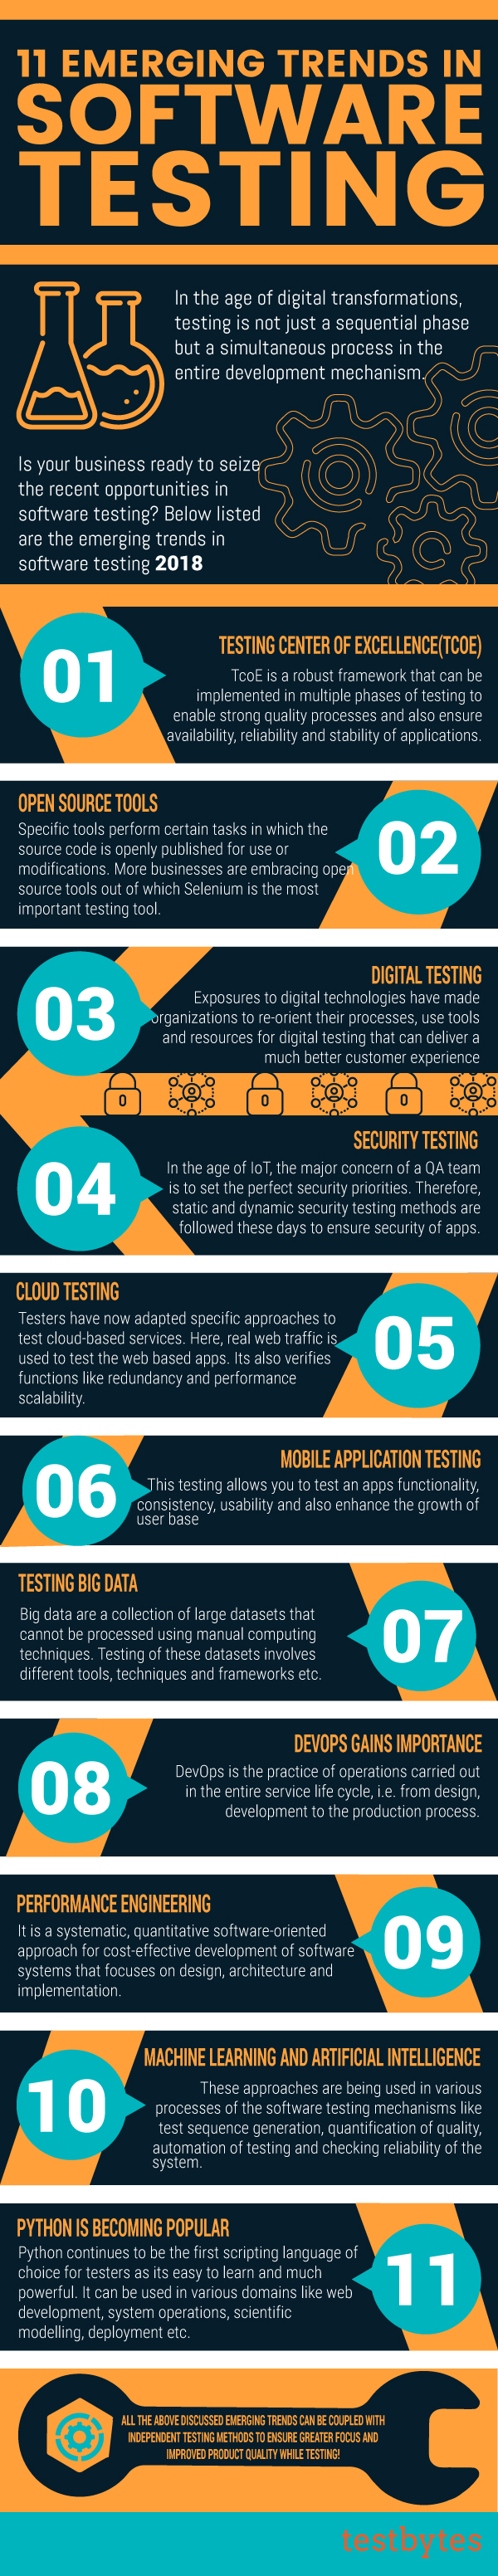 emerging-trends-in-software-testing-2018-infographic